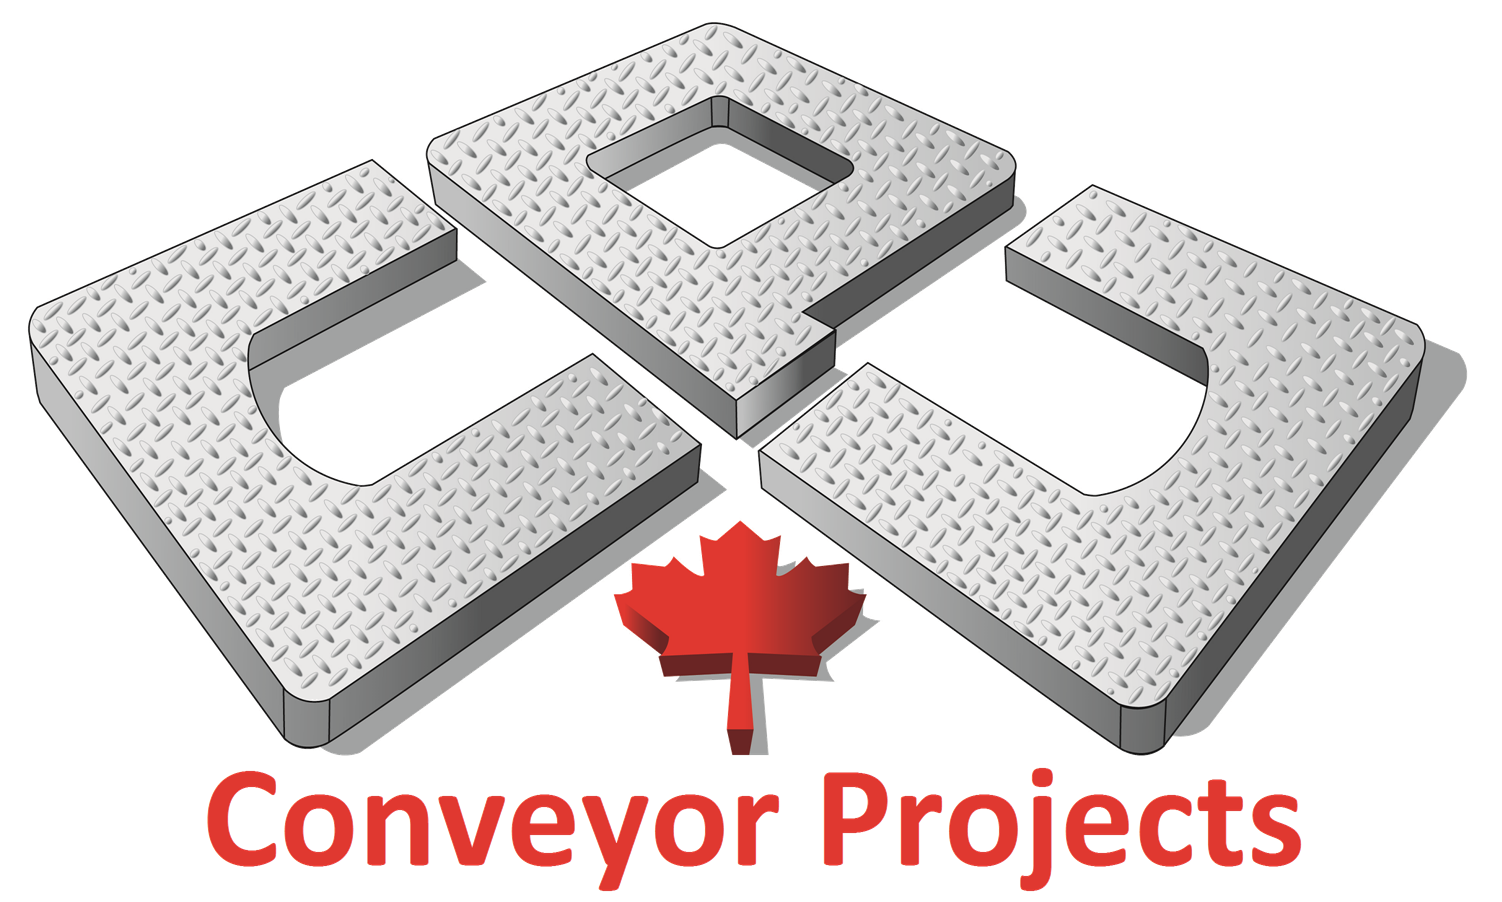 Conveyor Projects